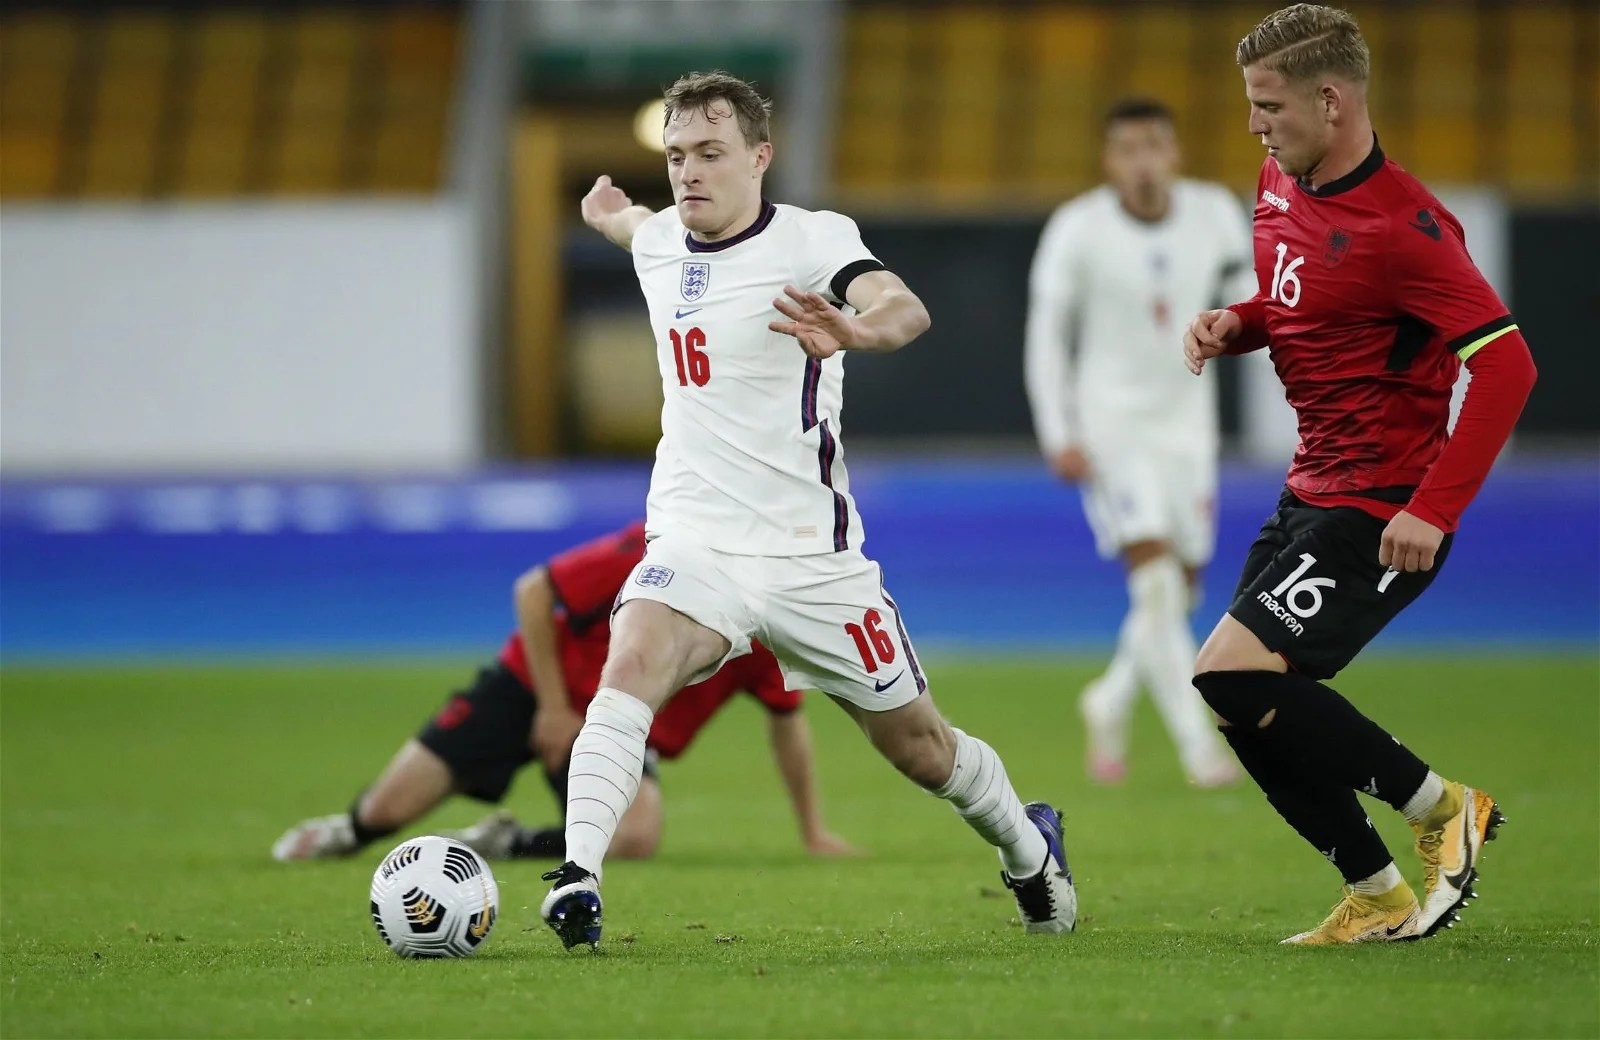 Oliver Skipp can be Spurs' next Carrick